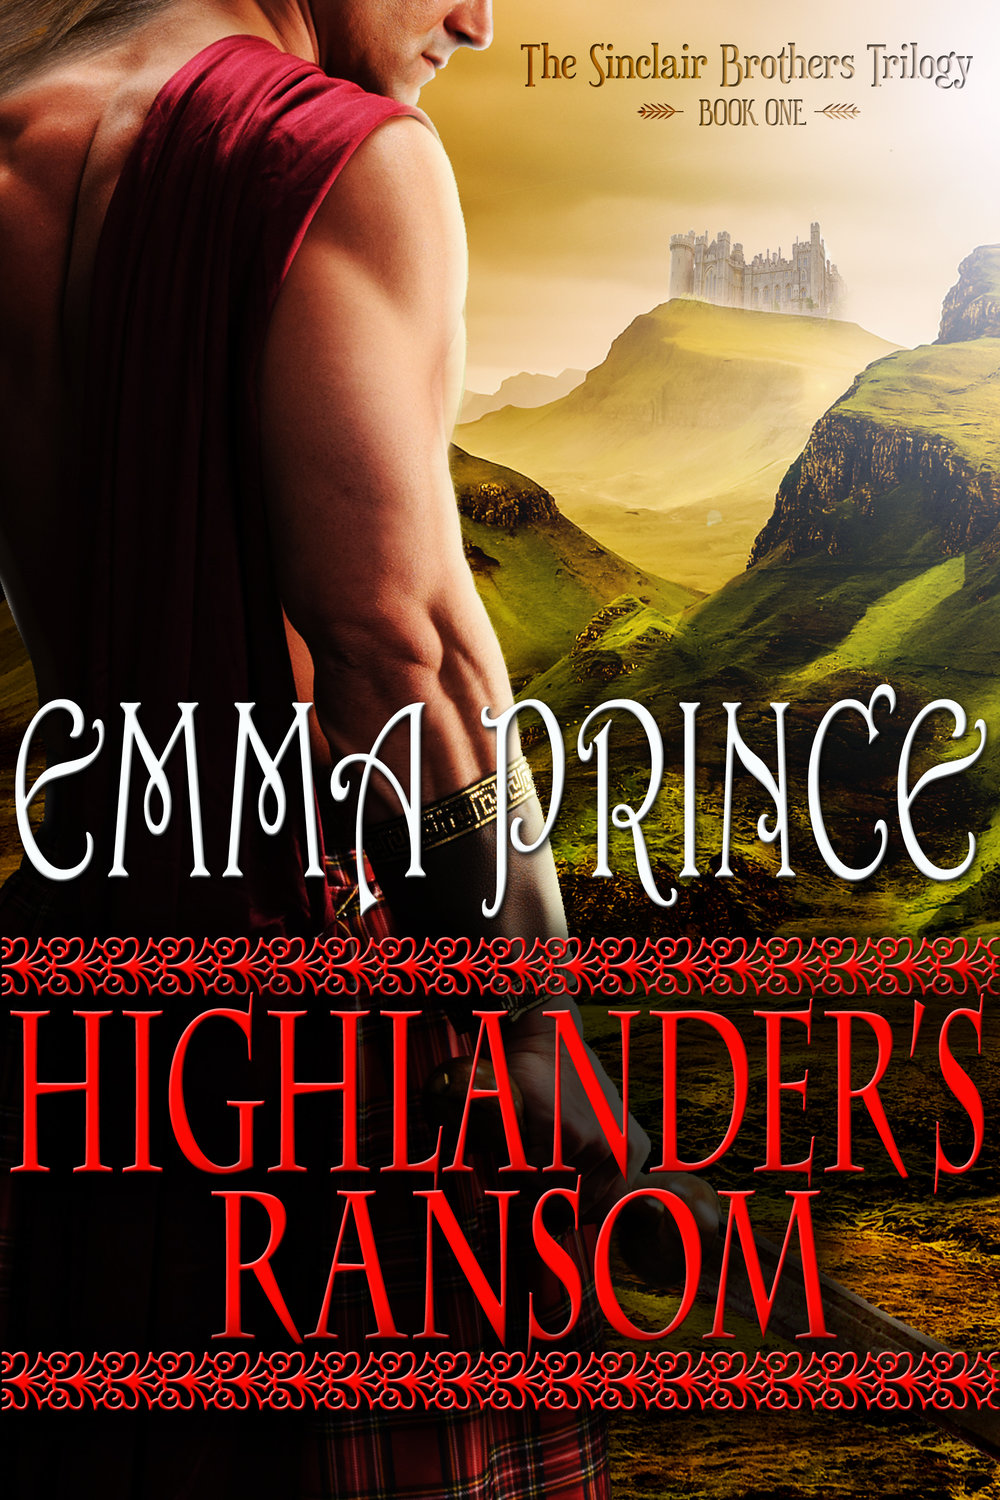 Highlander's Ransom (Book 1)